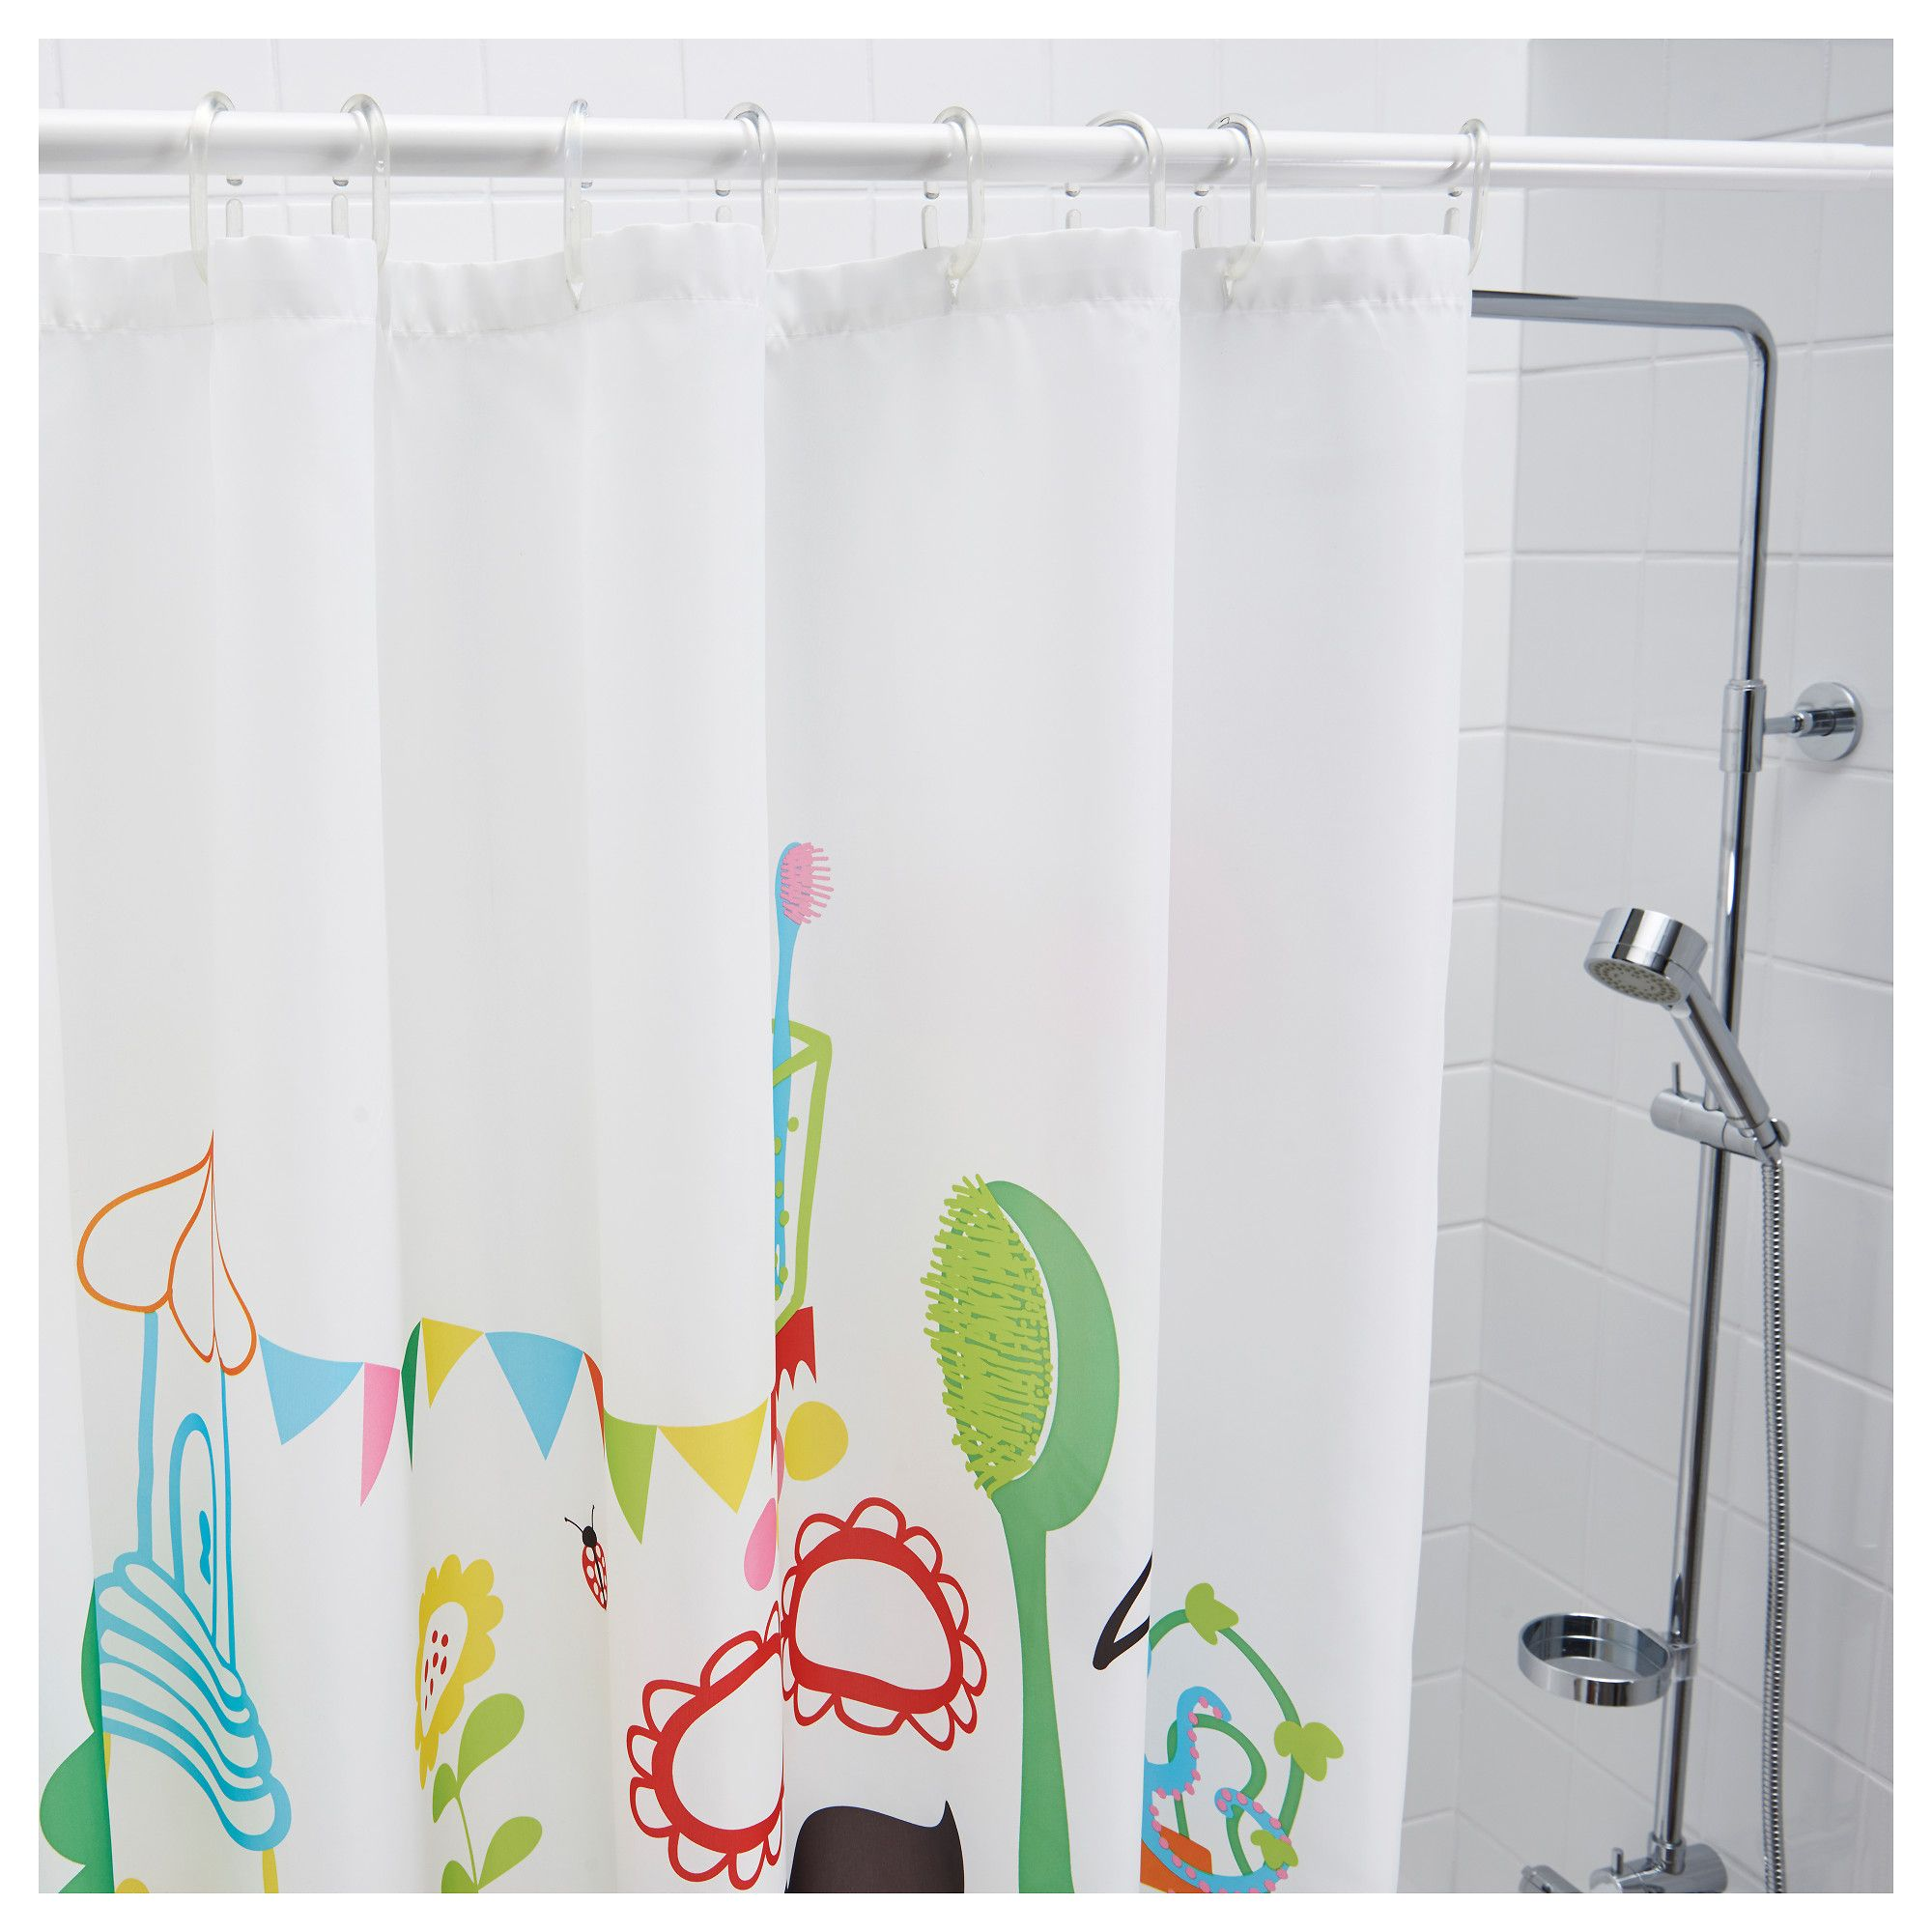 Ikea Shower Curtain for Best Your Bathroom Decoration: Tvingen Shower Curtain | Ikea Shower Curtain | Shower Curtain Rails Ikea